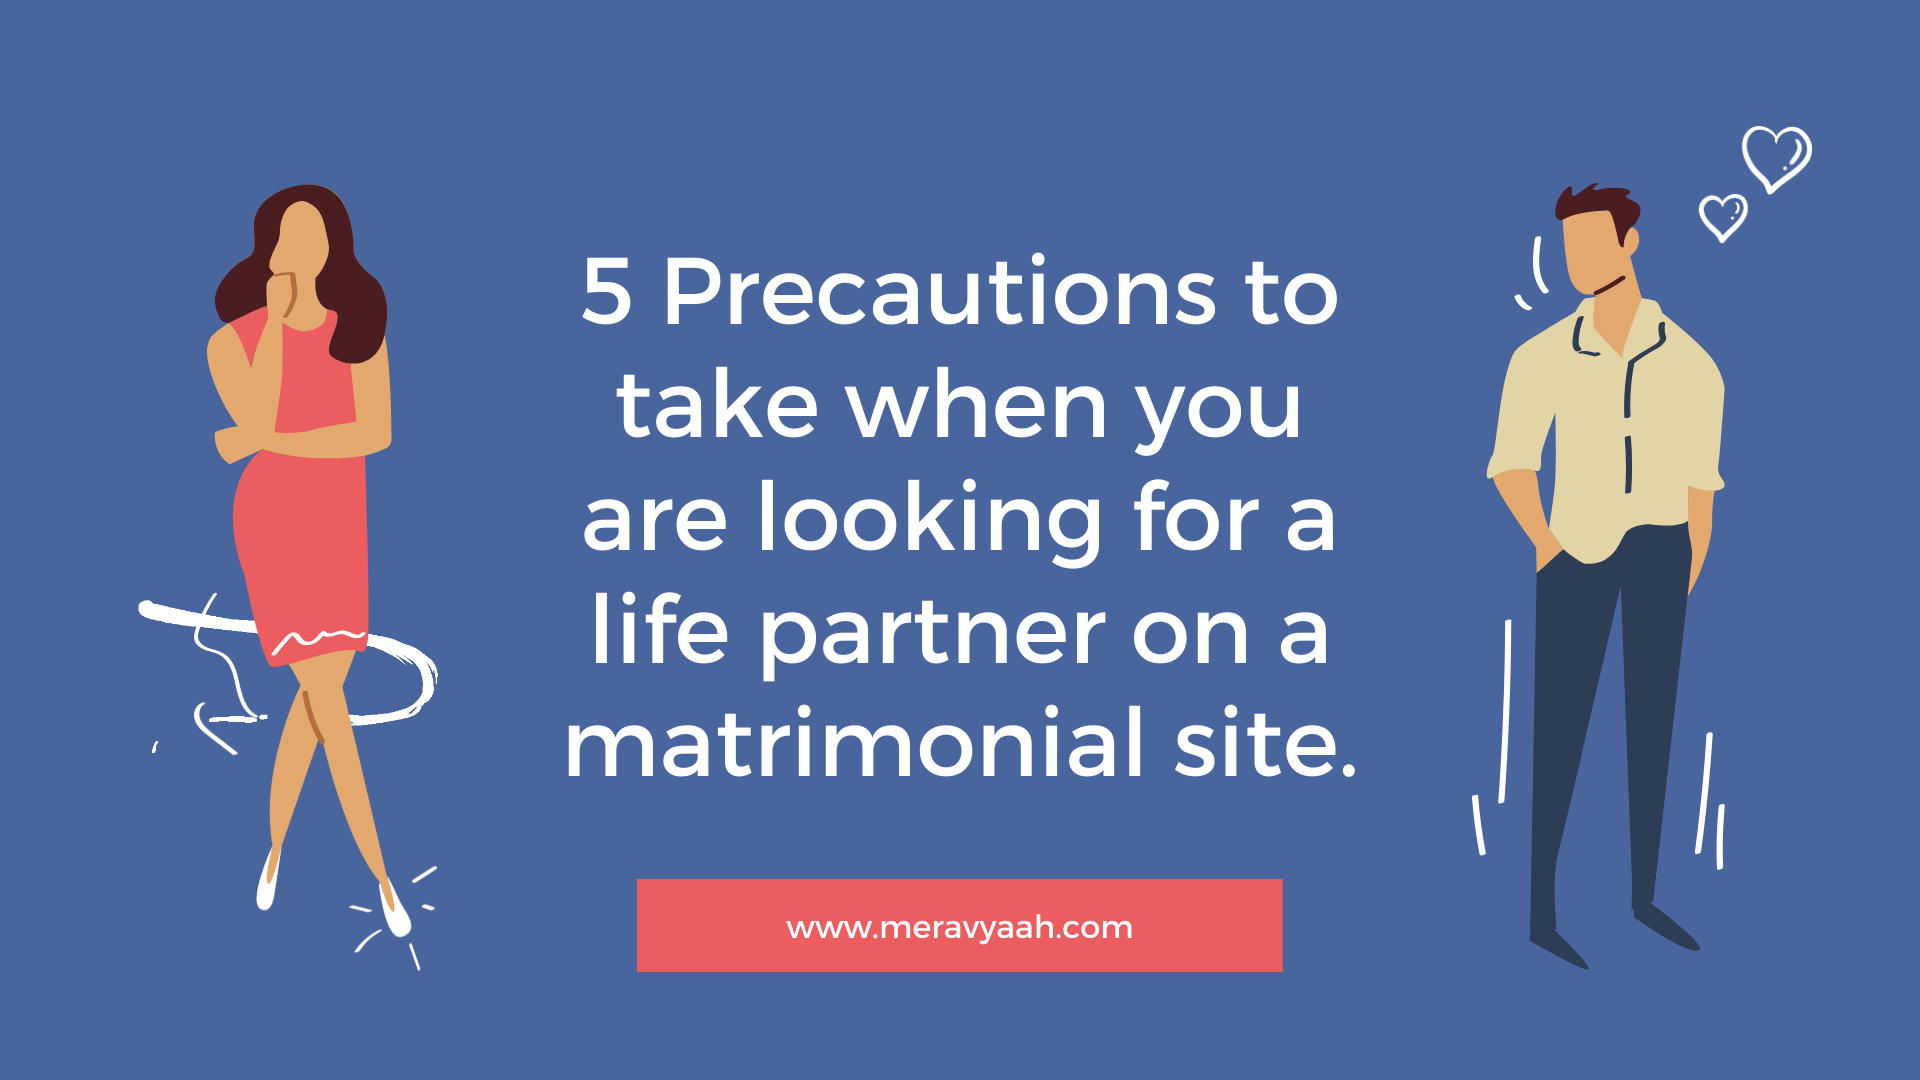 5 Safety Tips While Using Any Matrimony Sites